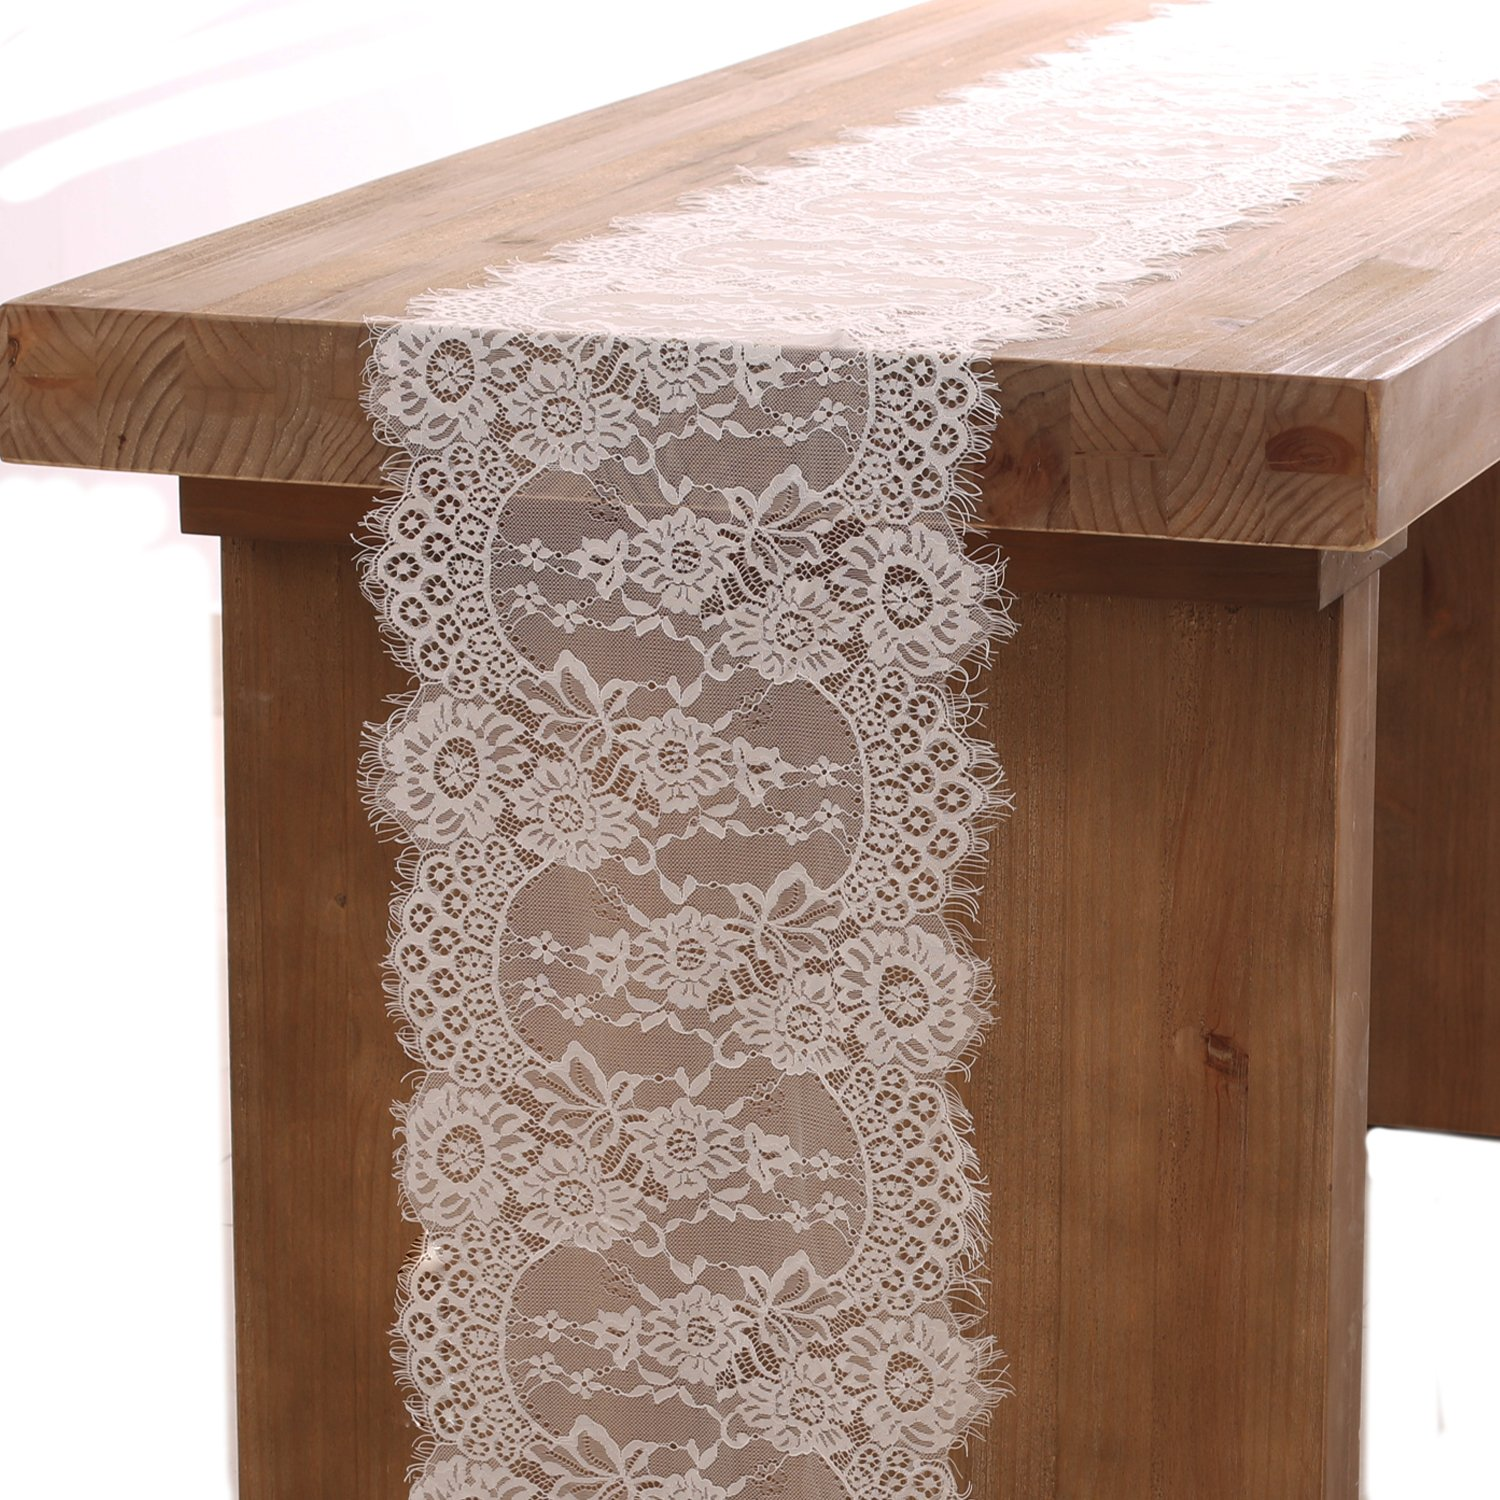 Floral bridal shower table decorations amazon lings moment 12 x 120 inches white lace table runneroverlay rustic chic wedding junglespirit Gallery